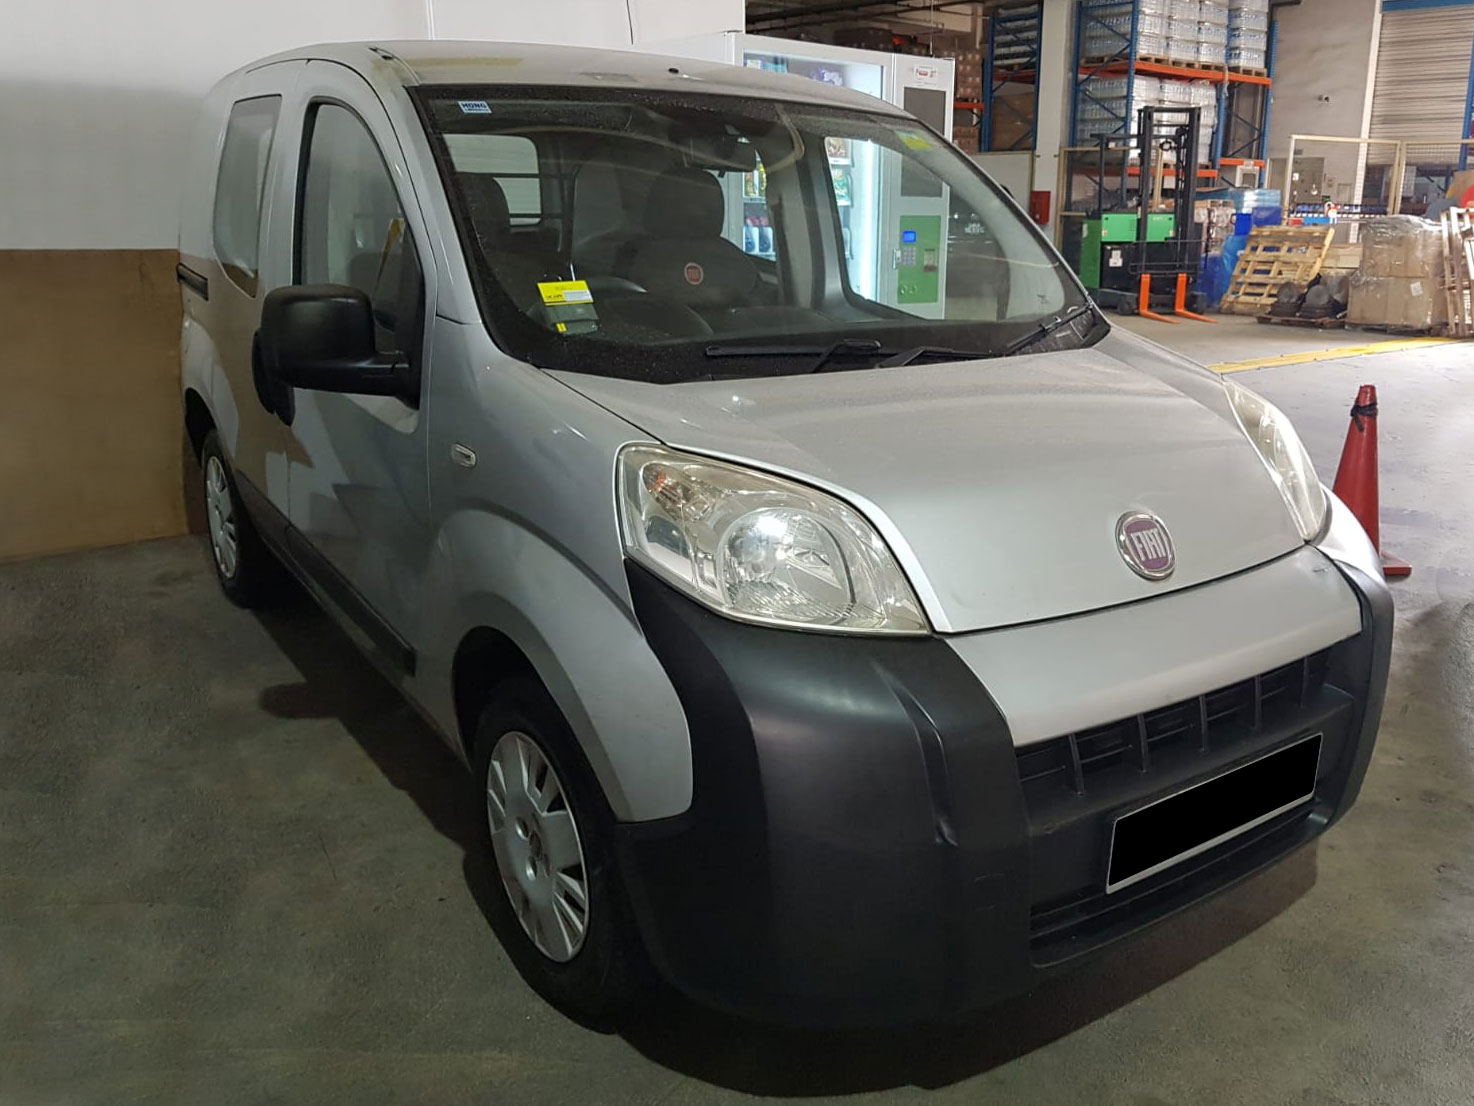 Fiat Fiorino 1.3MJTD (For Rent)